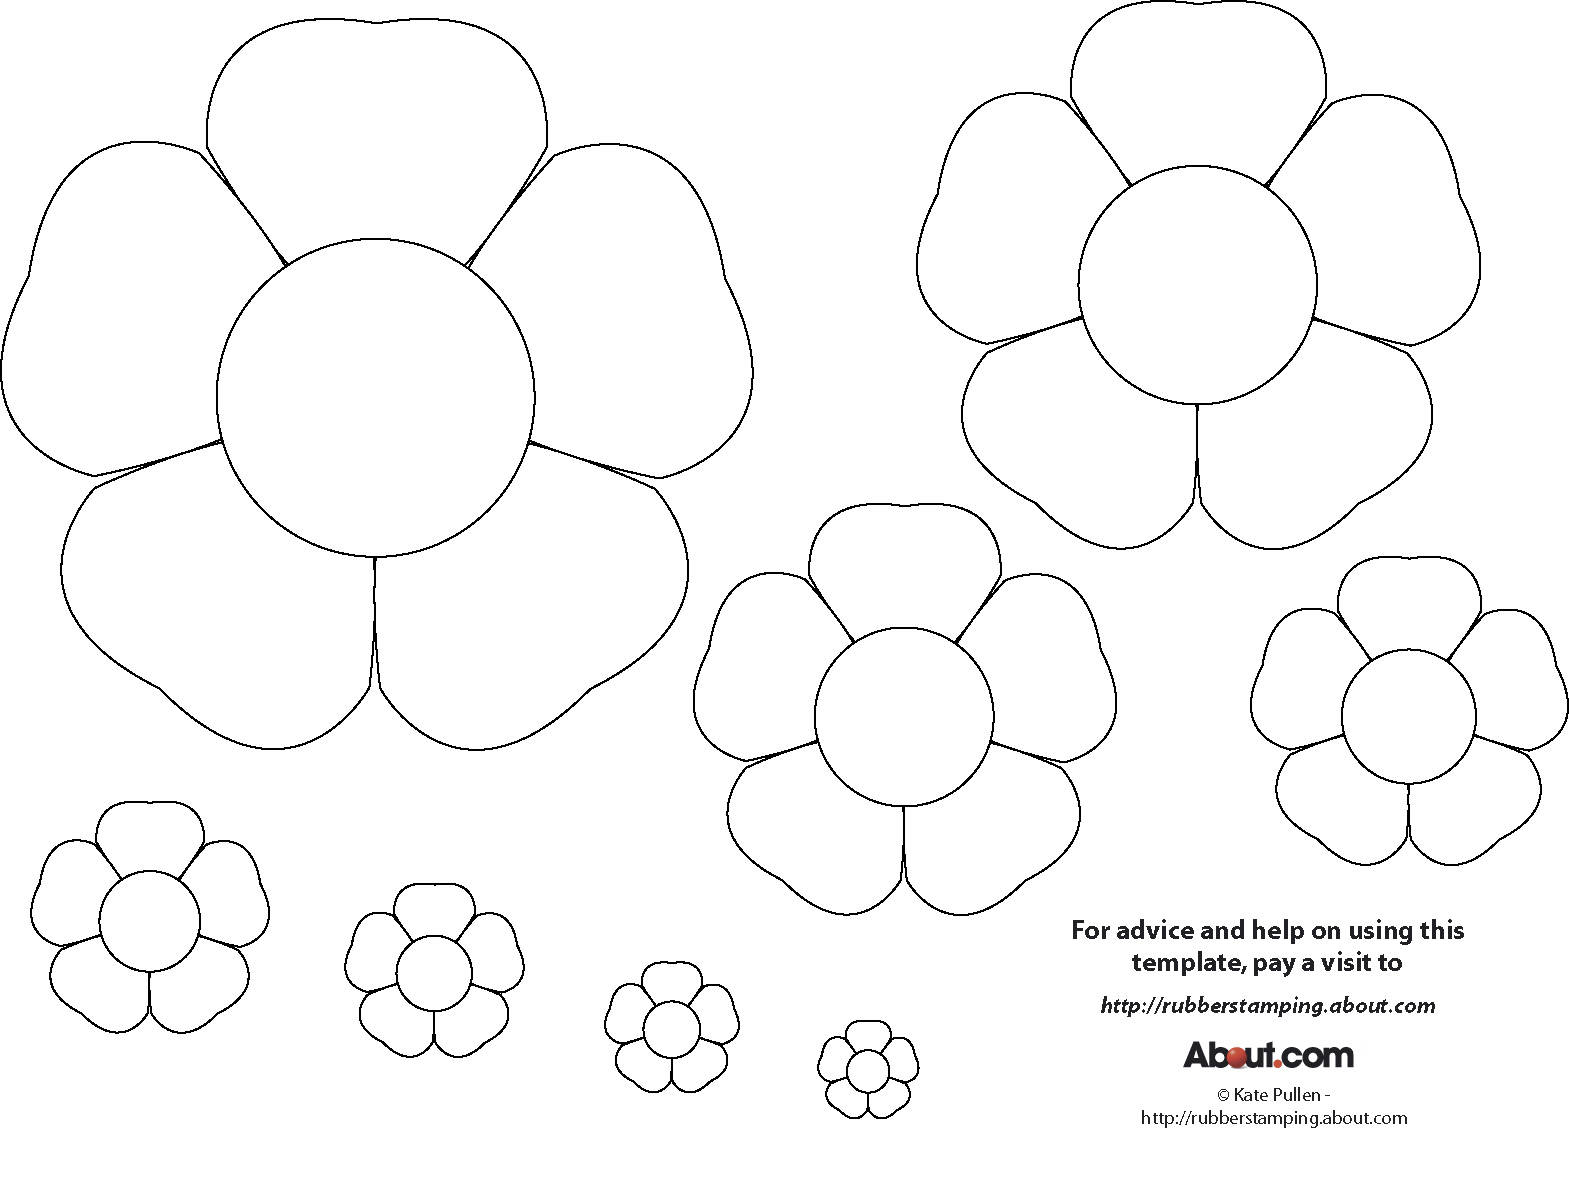 15 Printable Flower Patterns Designs Images